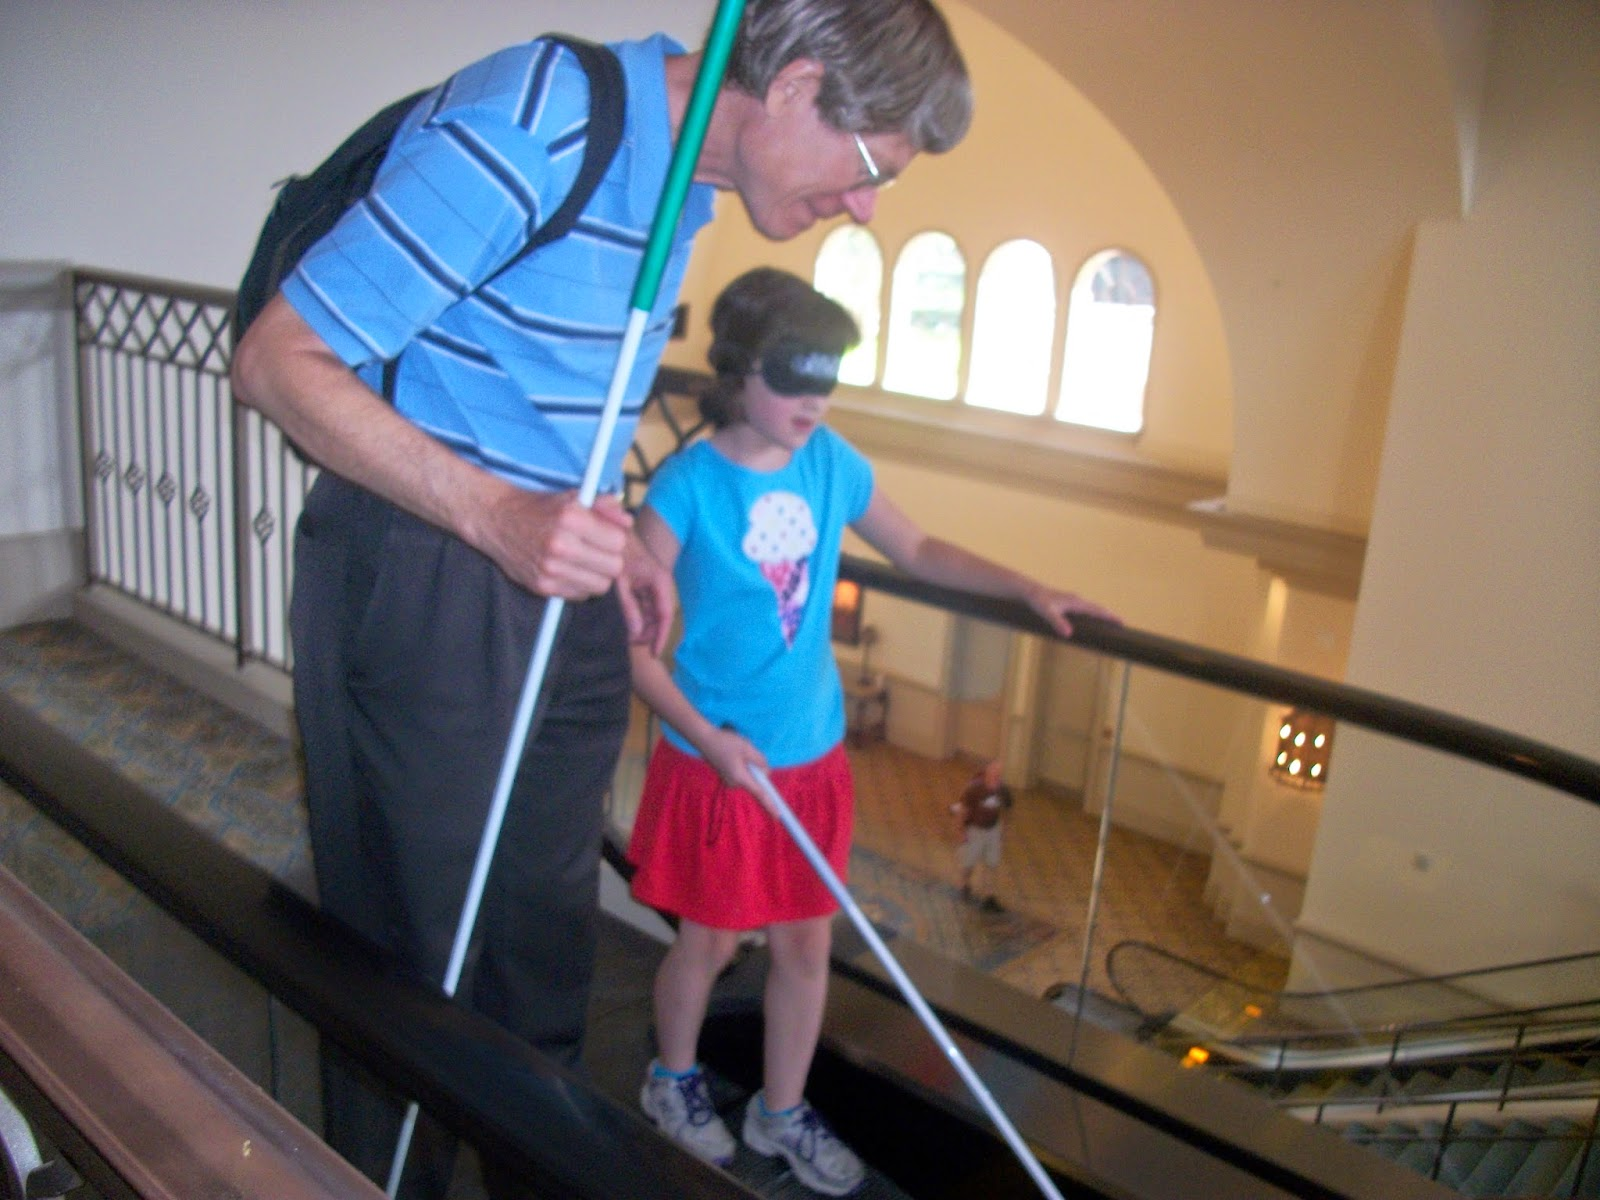 a blind girl with a white cane and instructor at an escalator